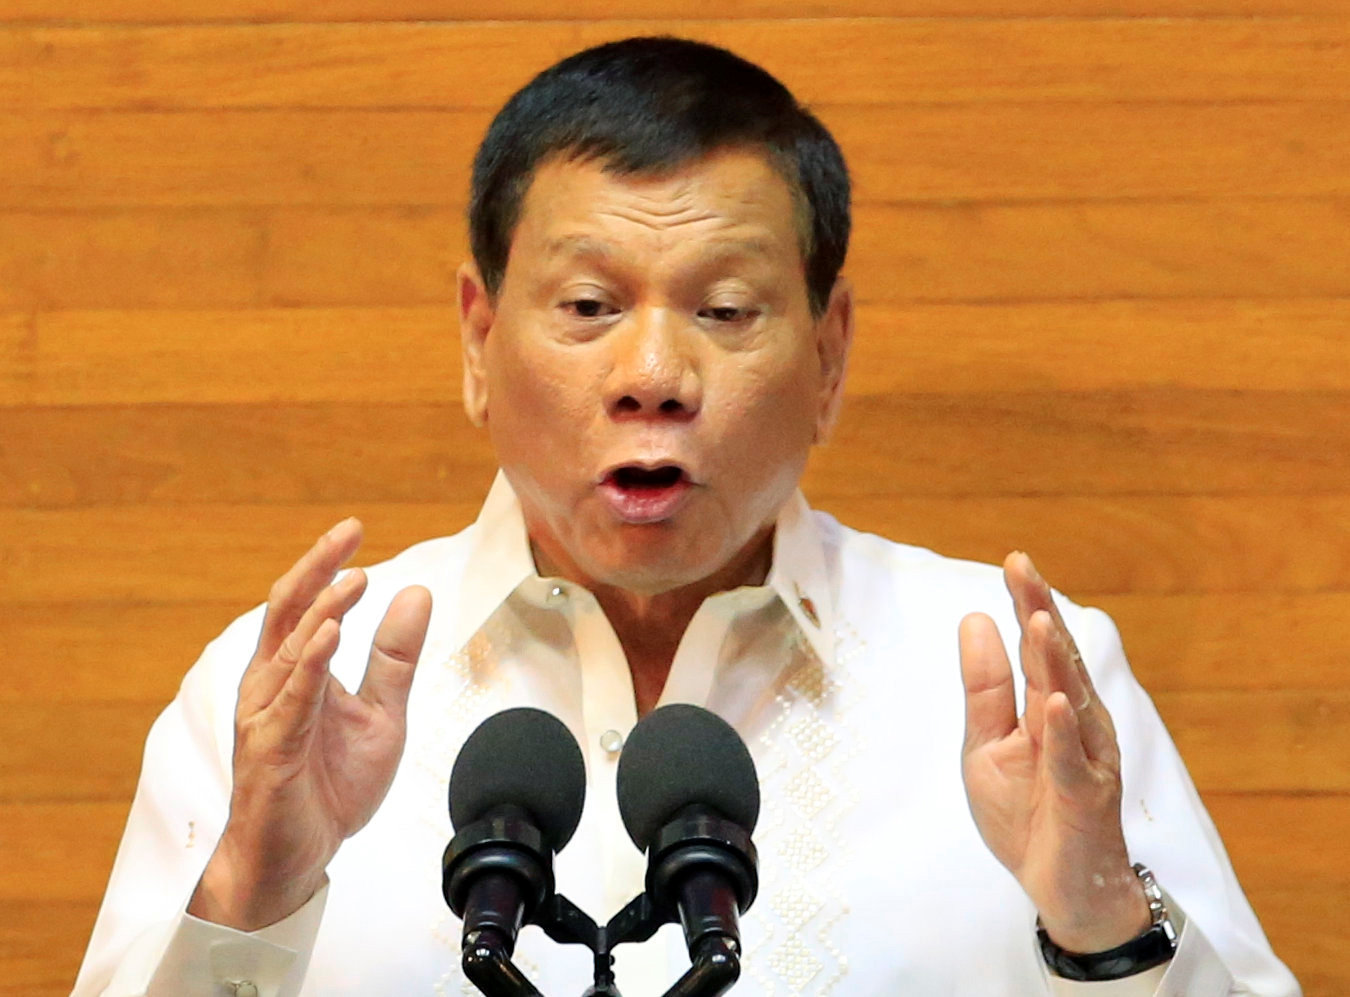 'I will tax you to death', Philippine president warns miners